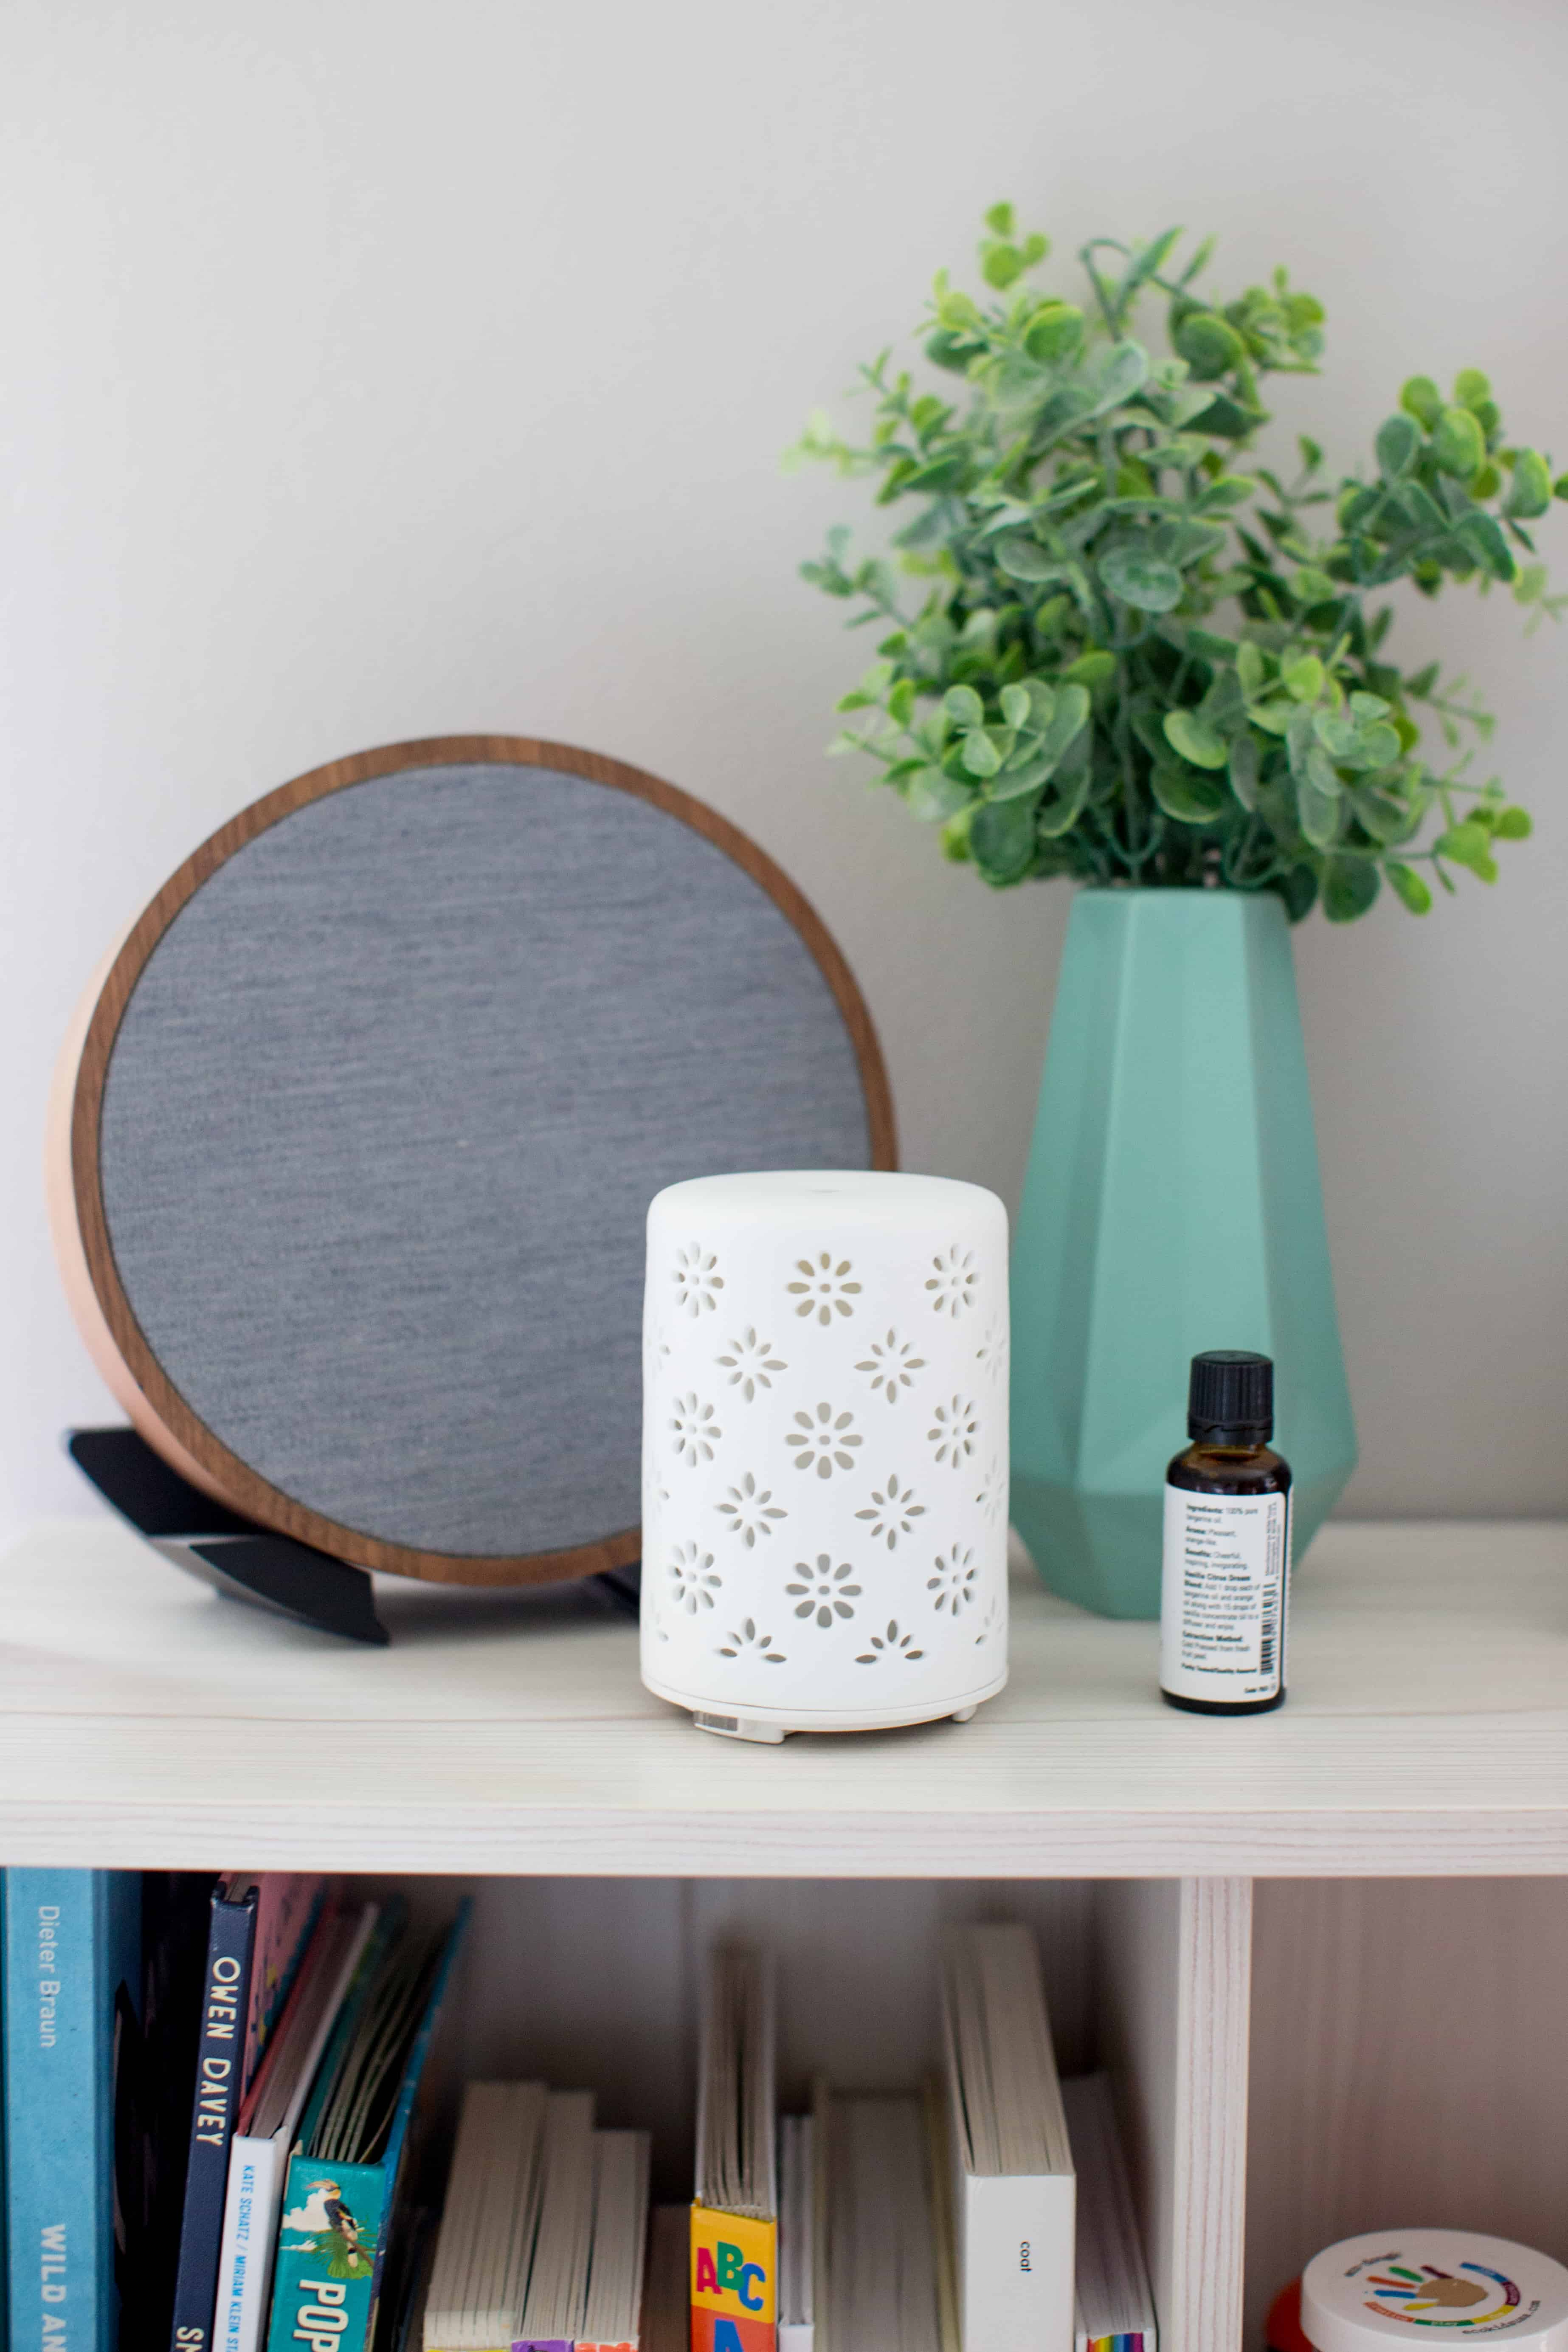 Diffuser and Aromatherapy must-haves